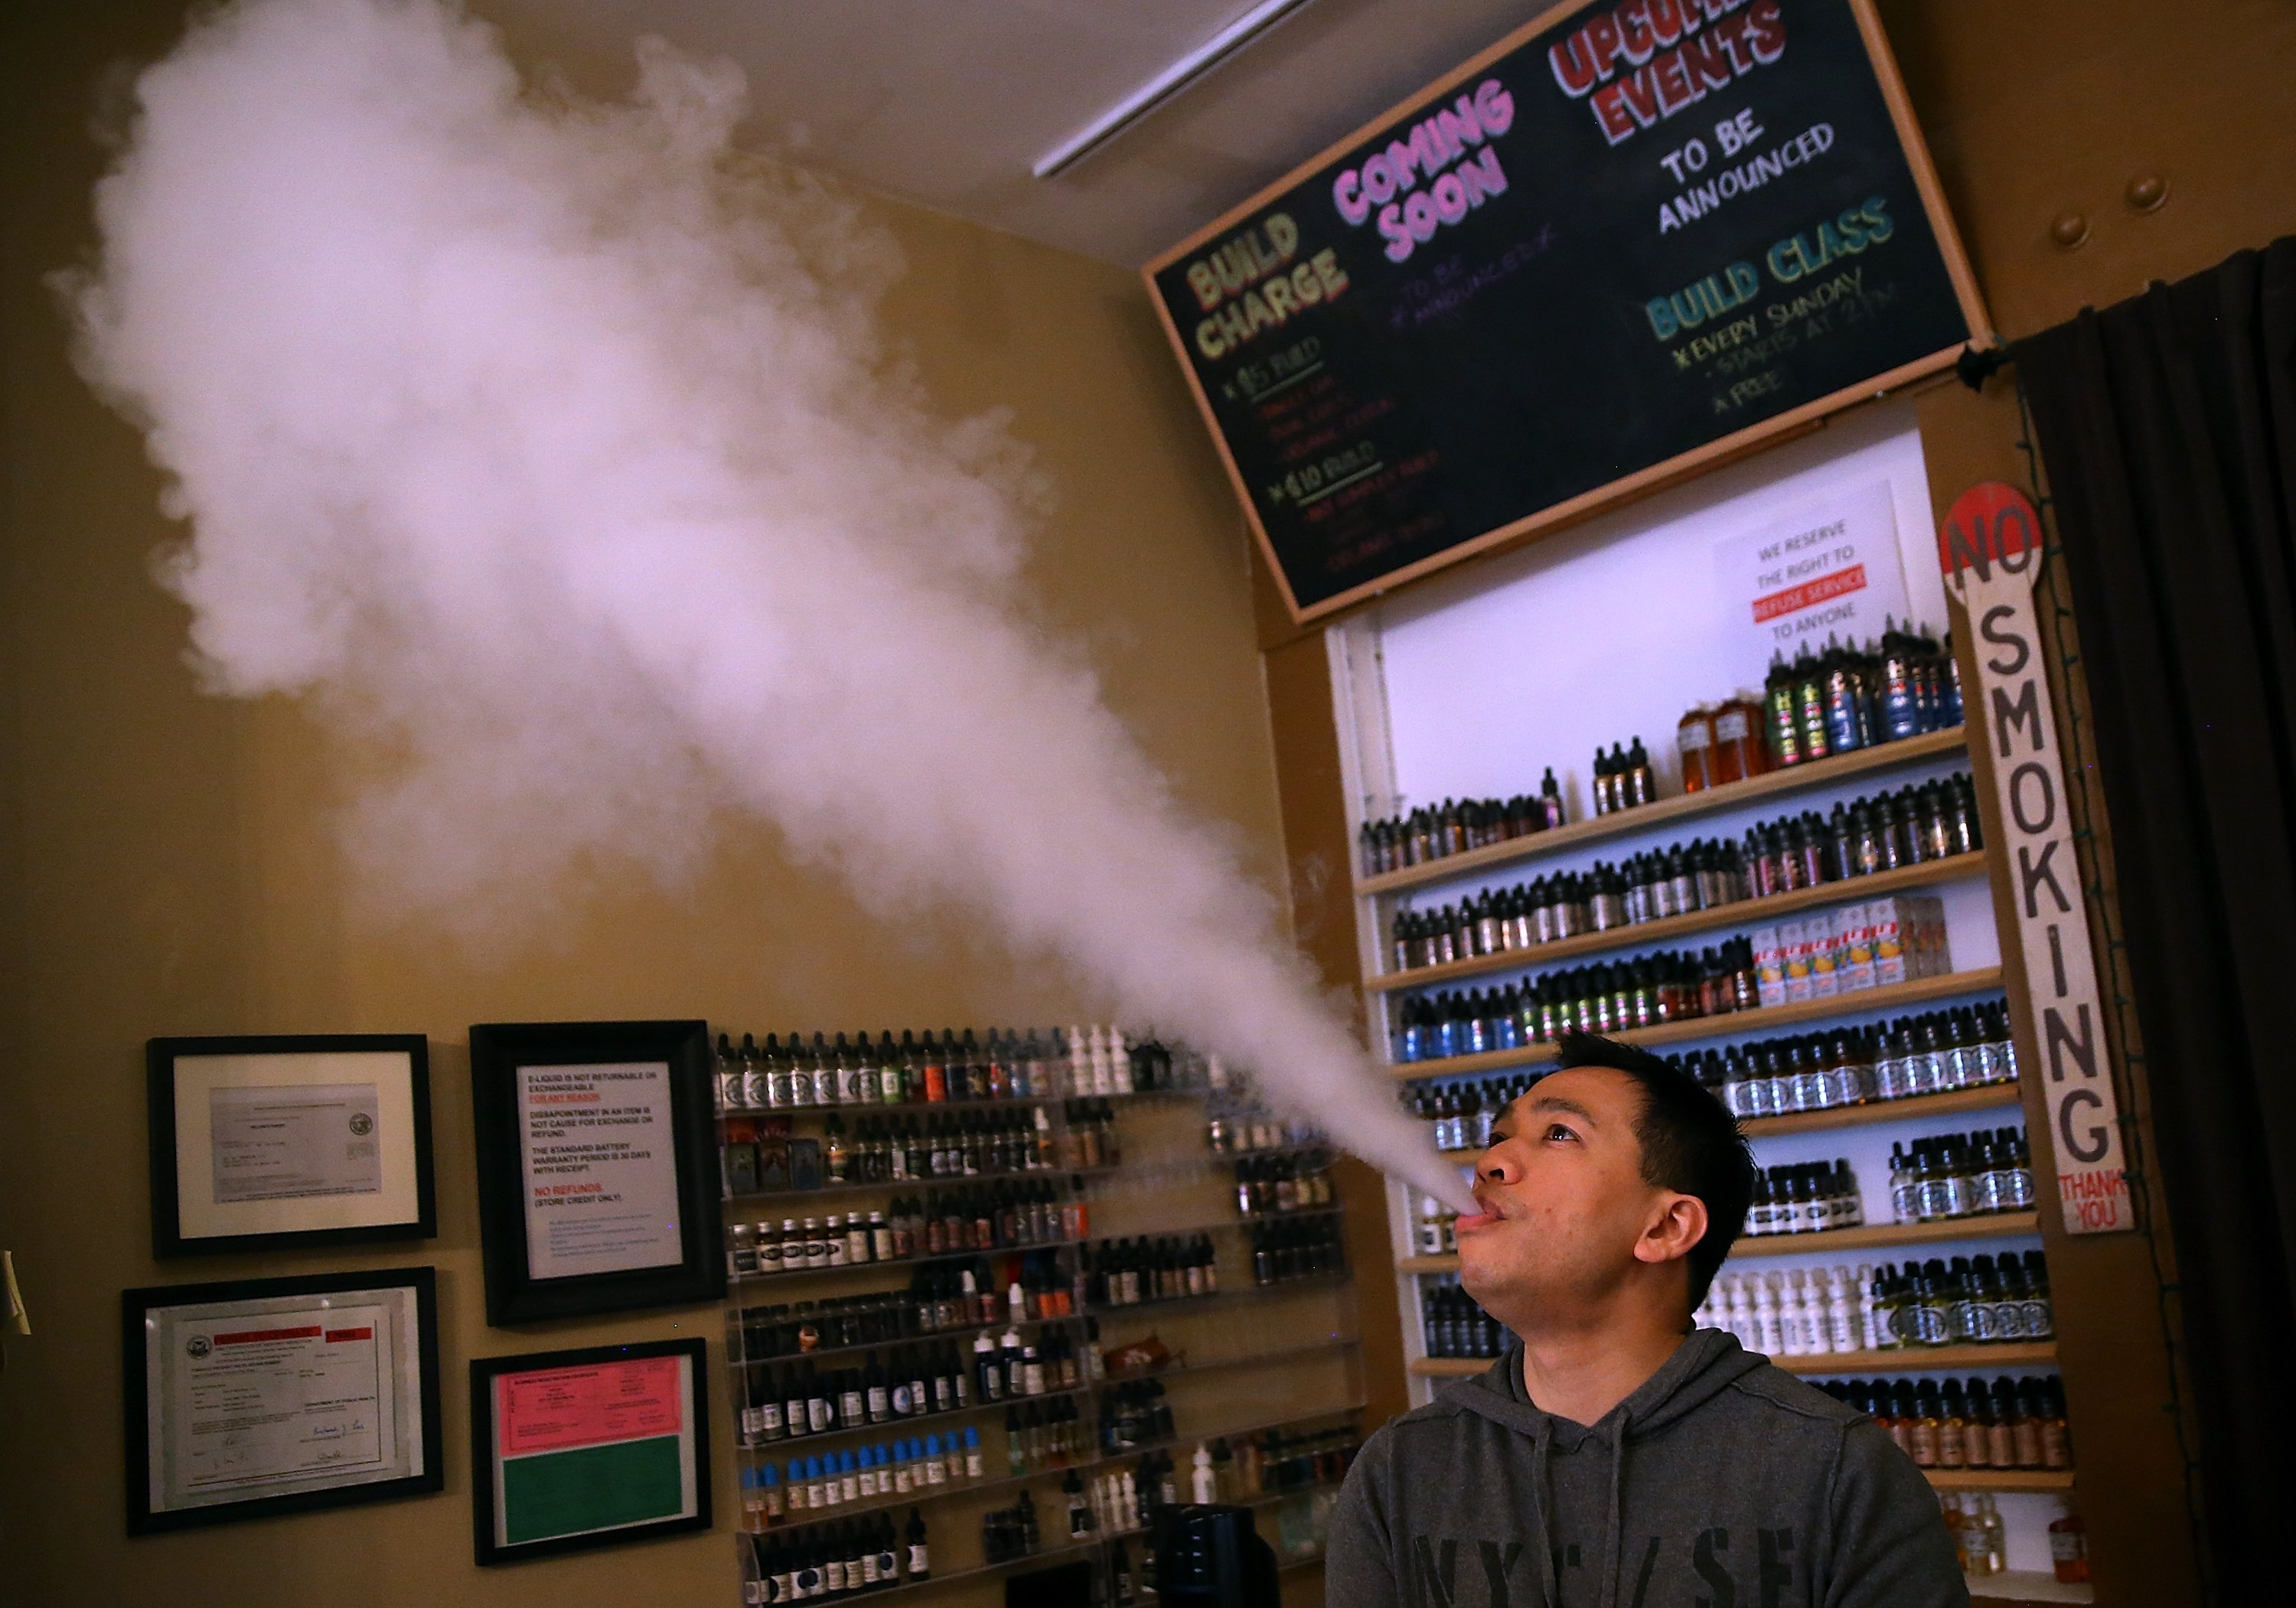 San Francisco's e-cigarette sales ban is an unprecedented health experiment